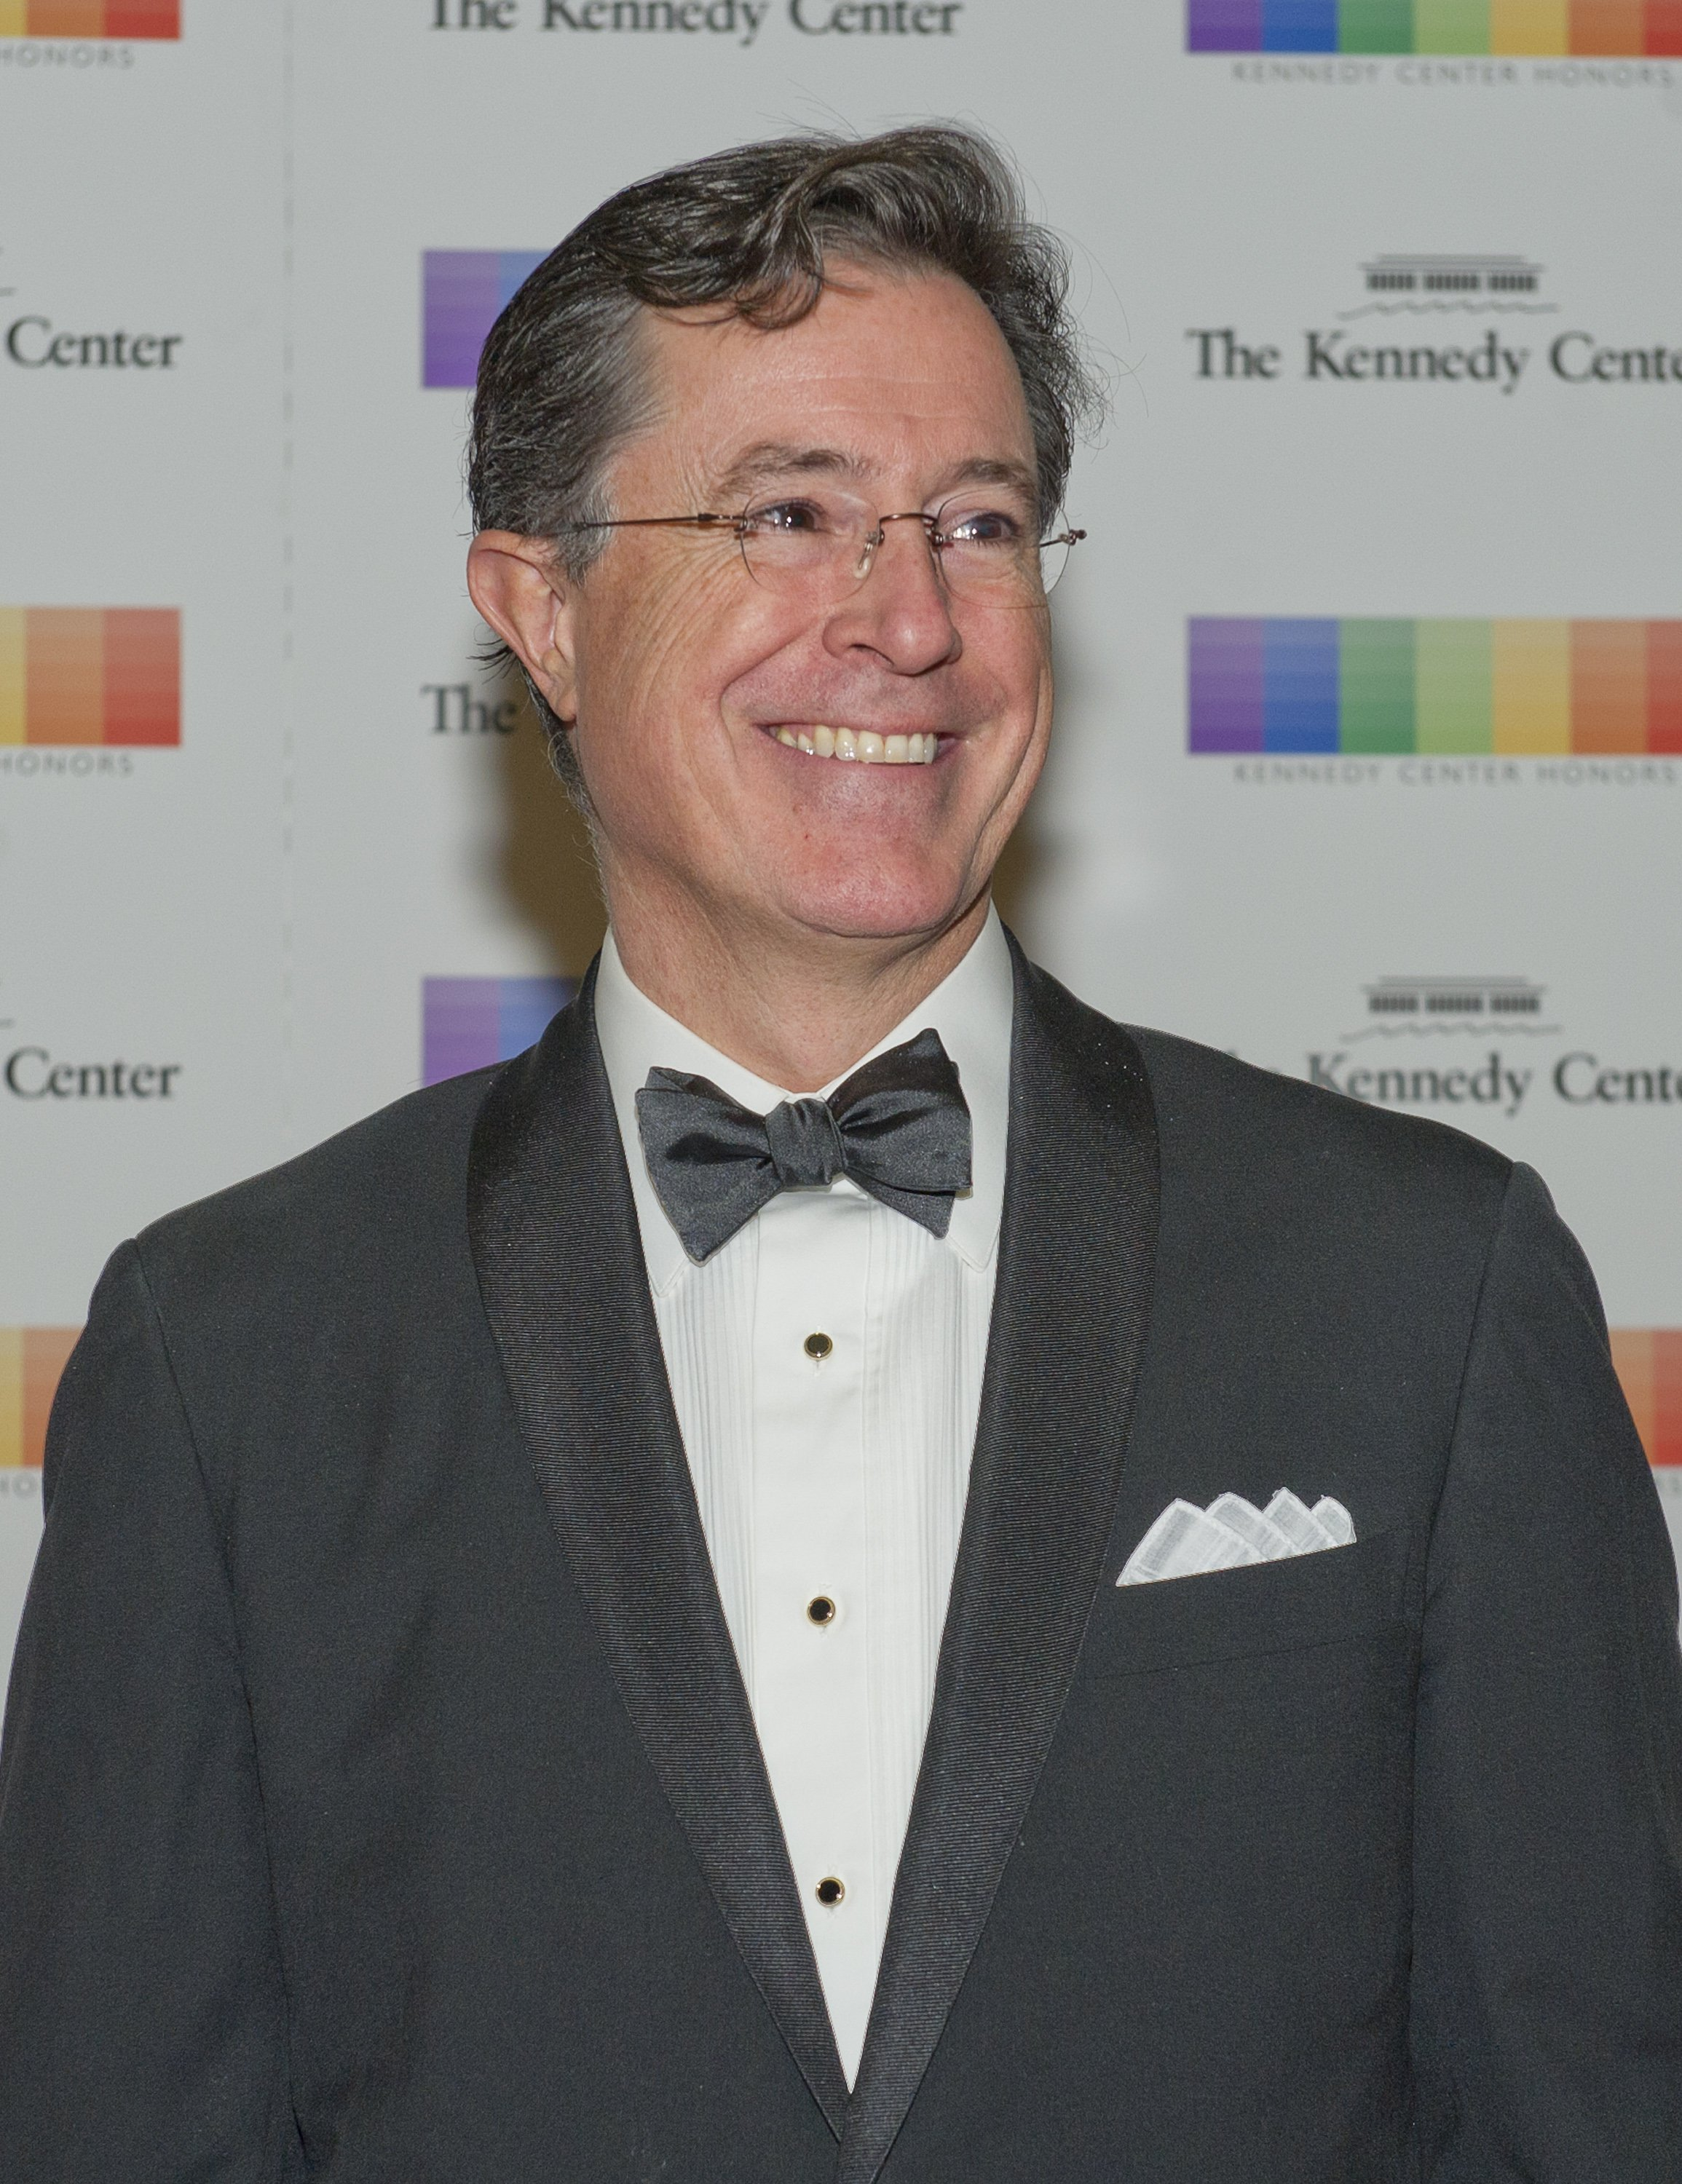 Stephen Colbert at the 38th Annual Kennedy Center Honors at the U.S. Department of State in Washington, D.C. on December 5, 2015 | Photo: GettyImages